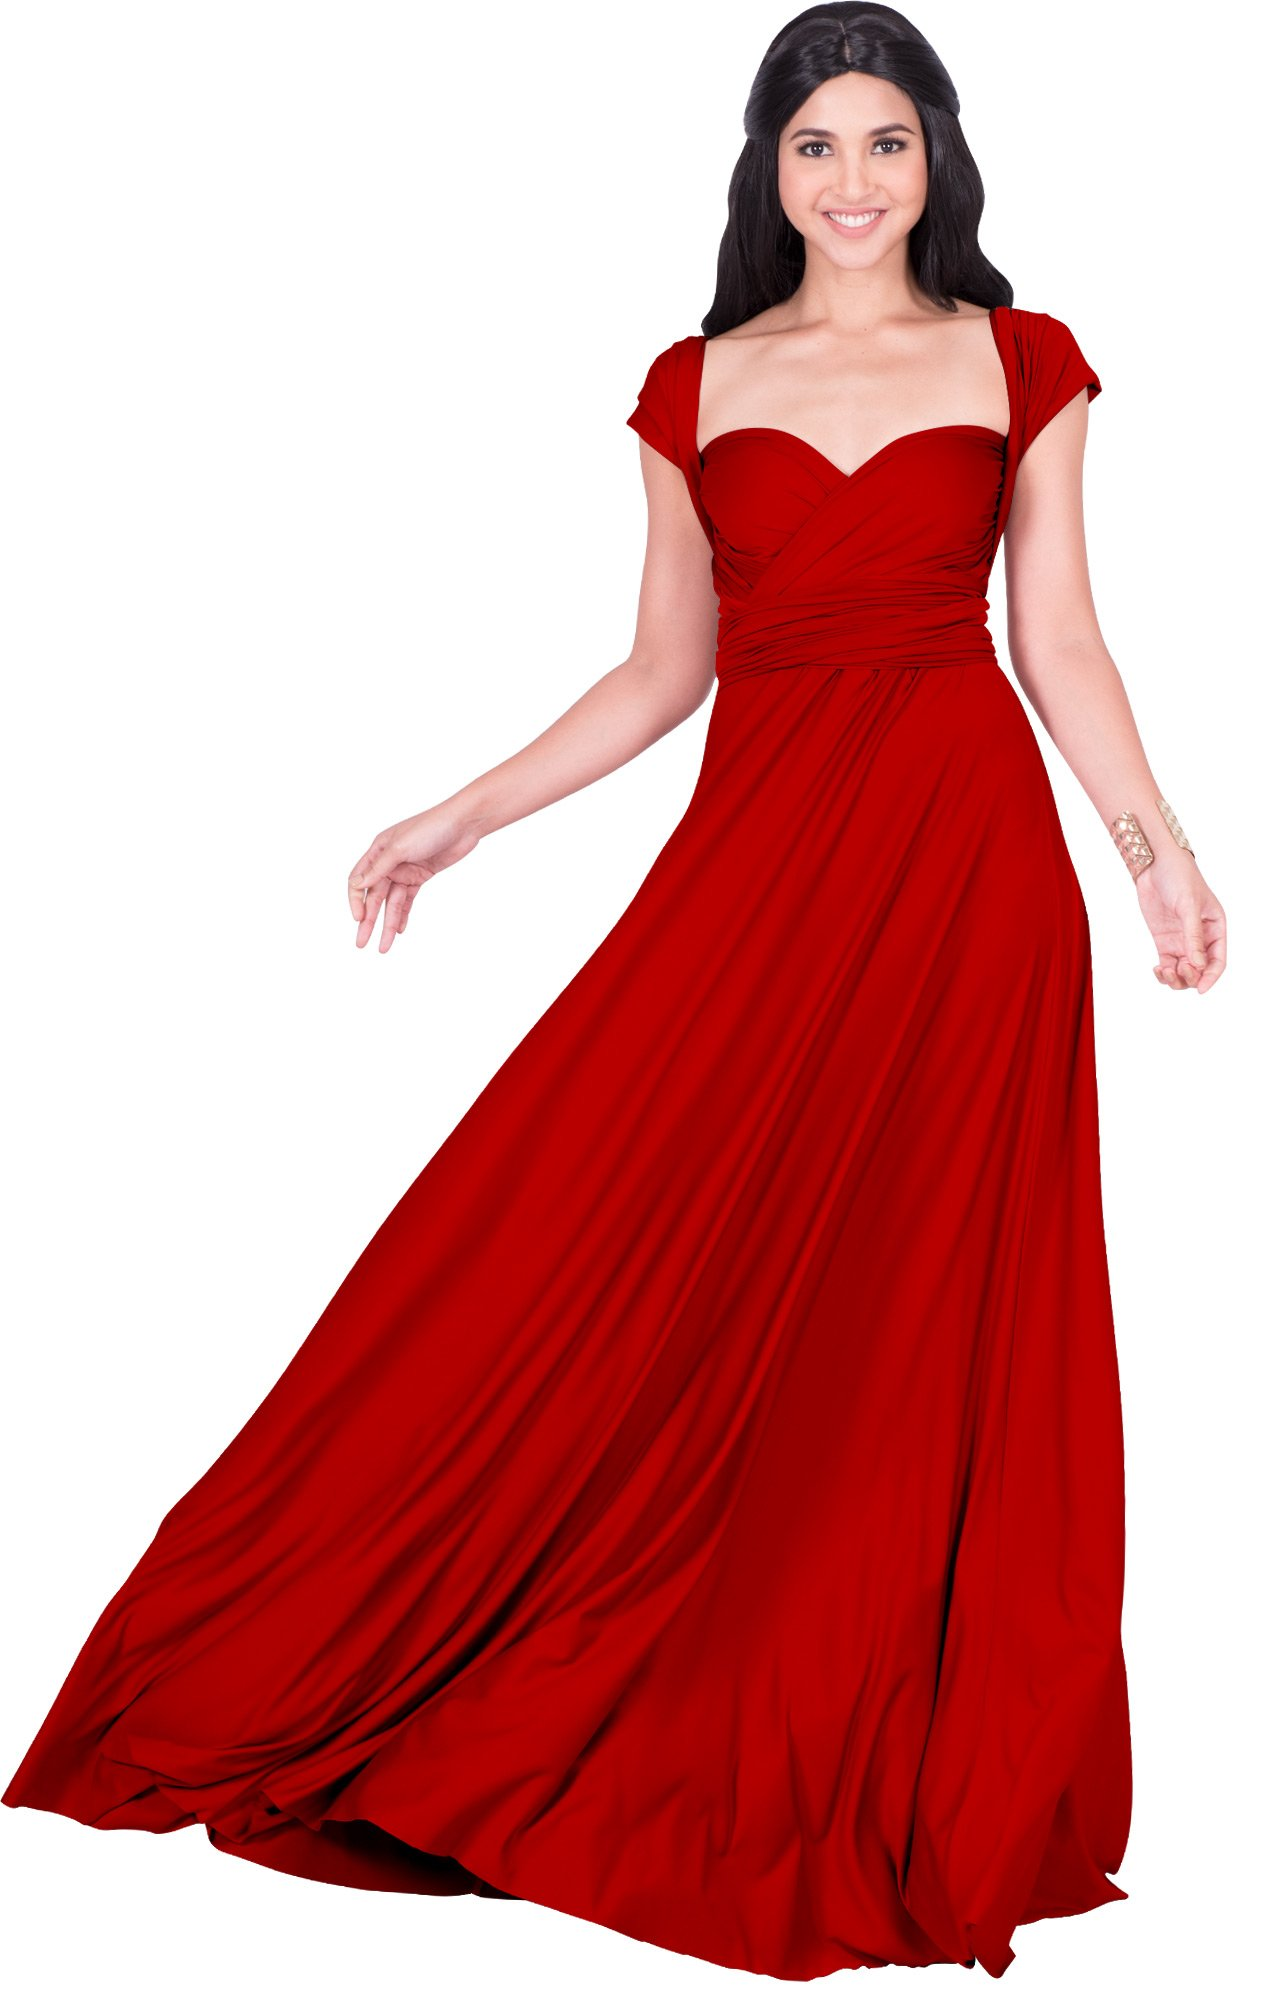 KOH KOH Petite Womens Long Bridesmaid Multi-way Wedding Convertible Wrap Infinity Cocktail Sexy Summer Party Formal Prom Transformer Gown Gowns Maxi Dress Dresses, Red XS 2-4